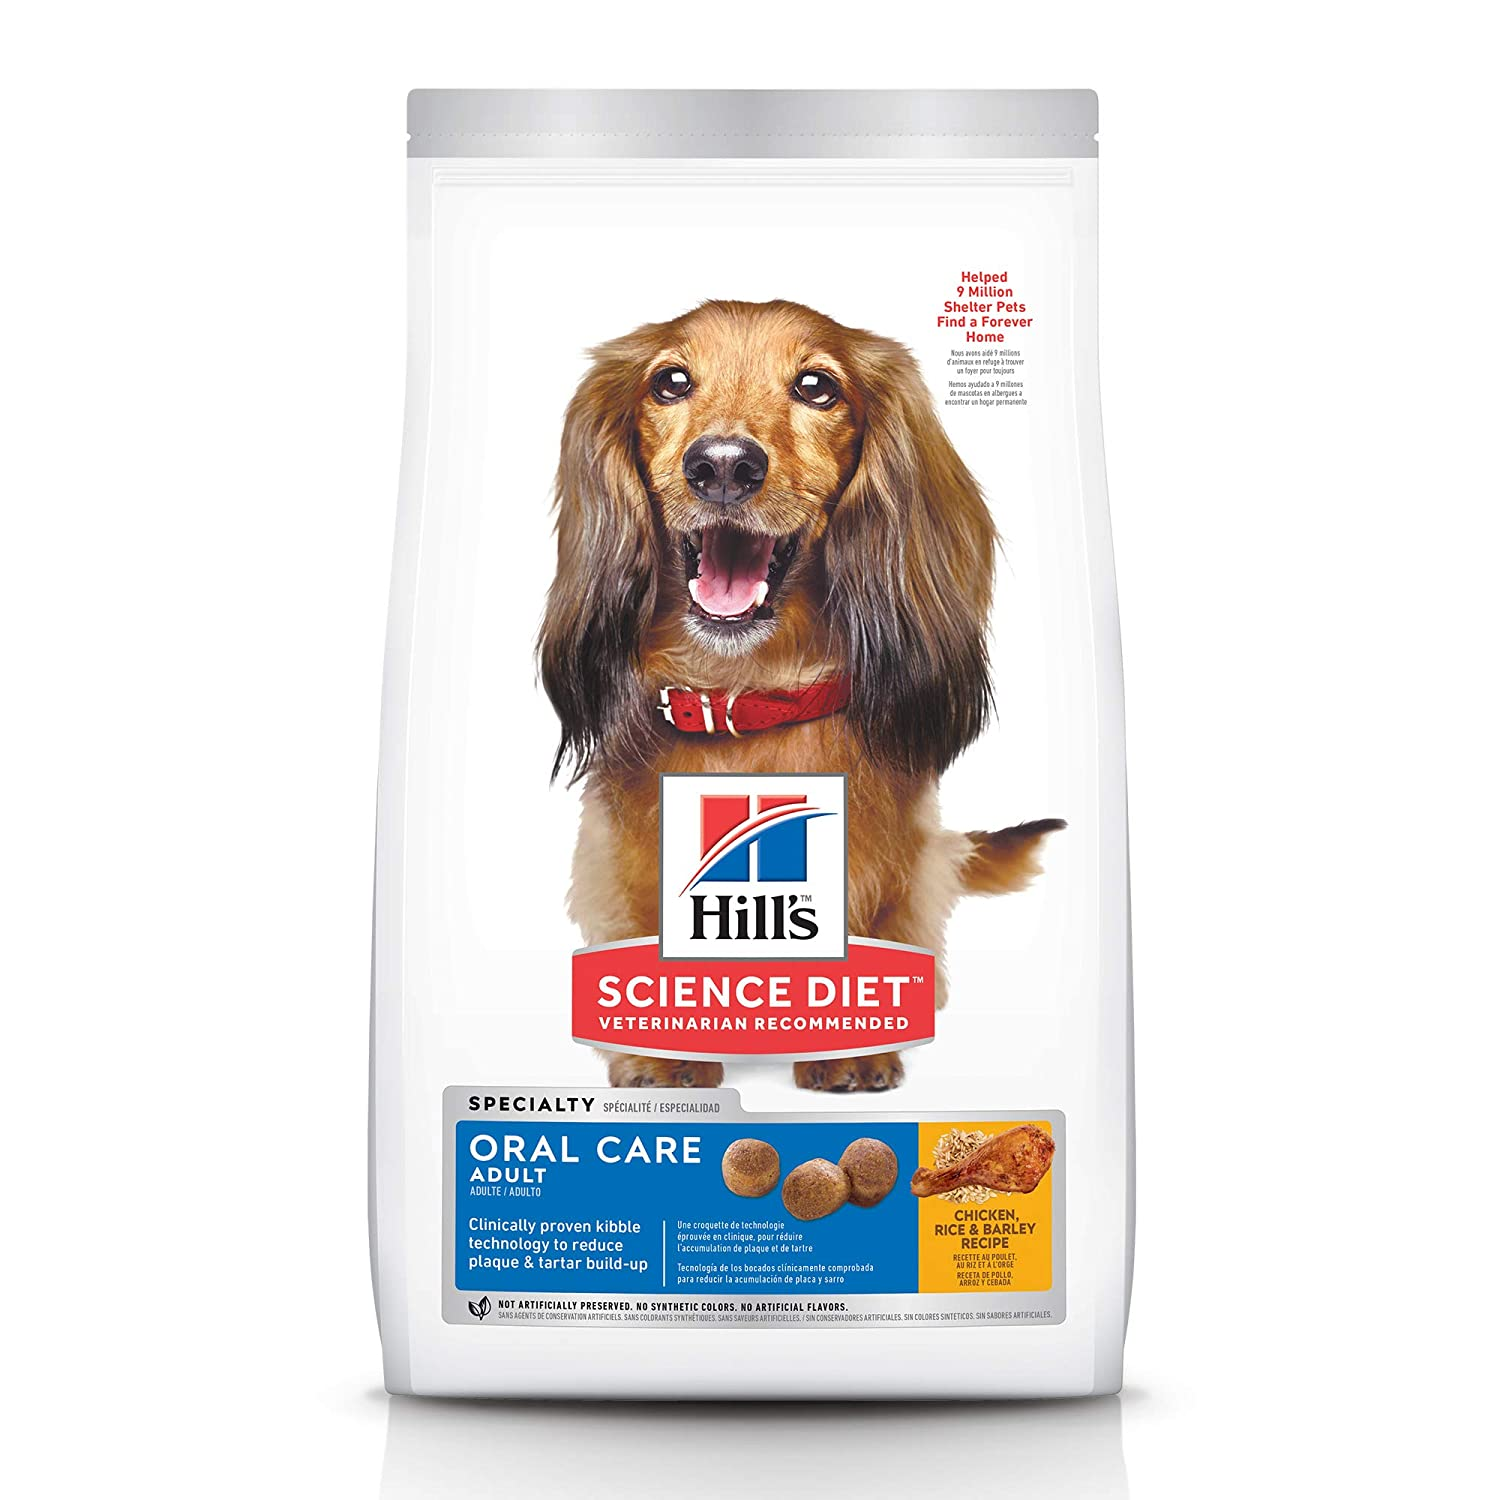 Hill's Science Diet Dry Dog Food, Adult, Oral Care, Chicken, Rice & Barley Recipe